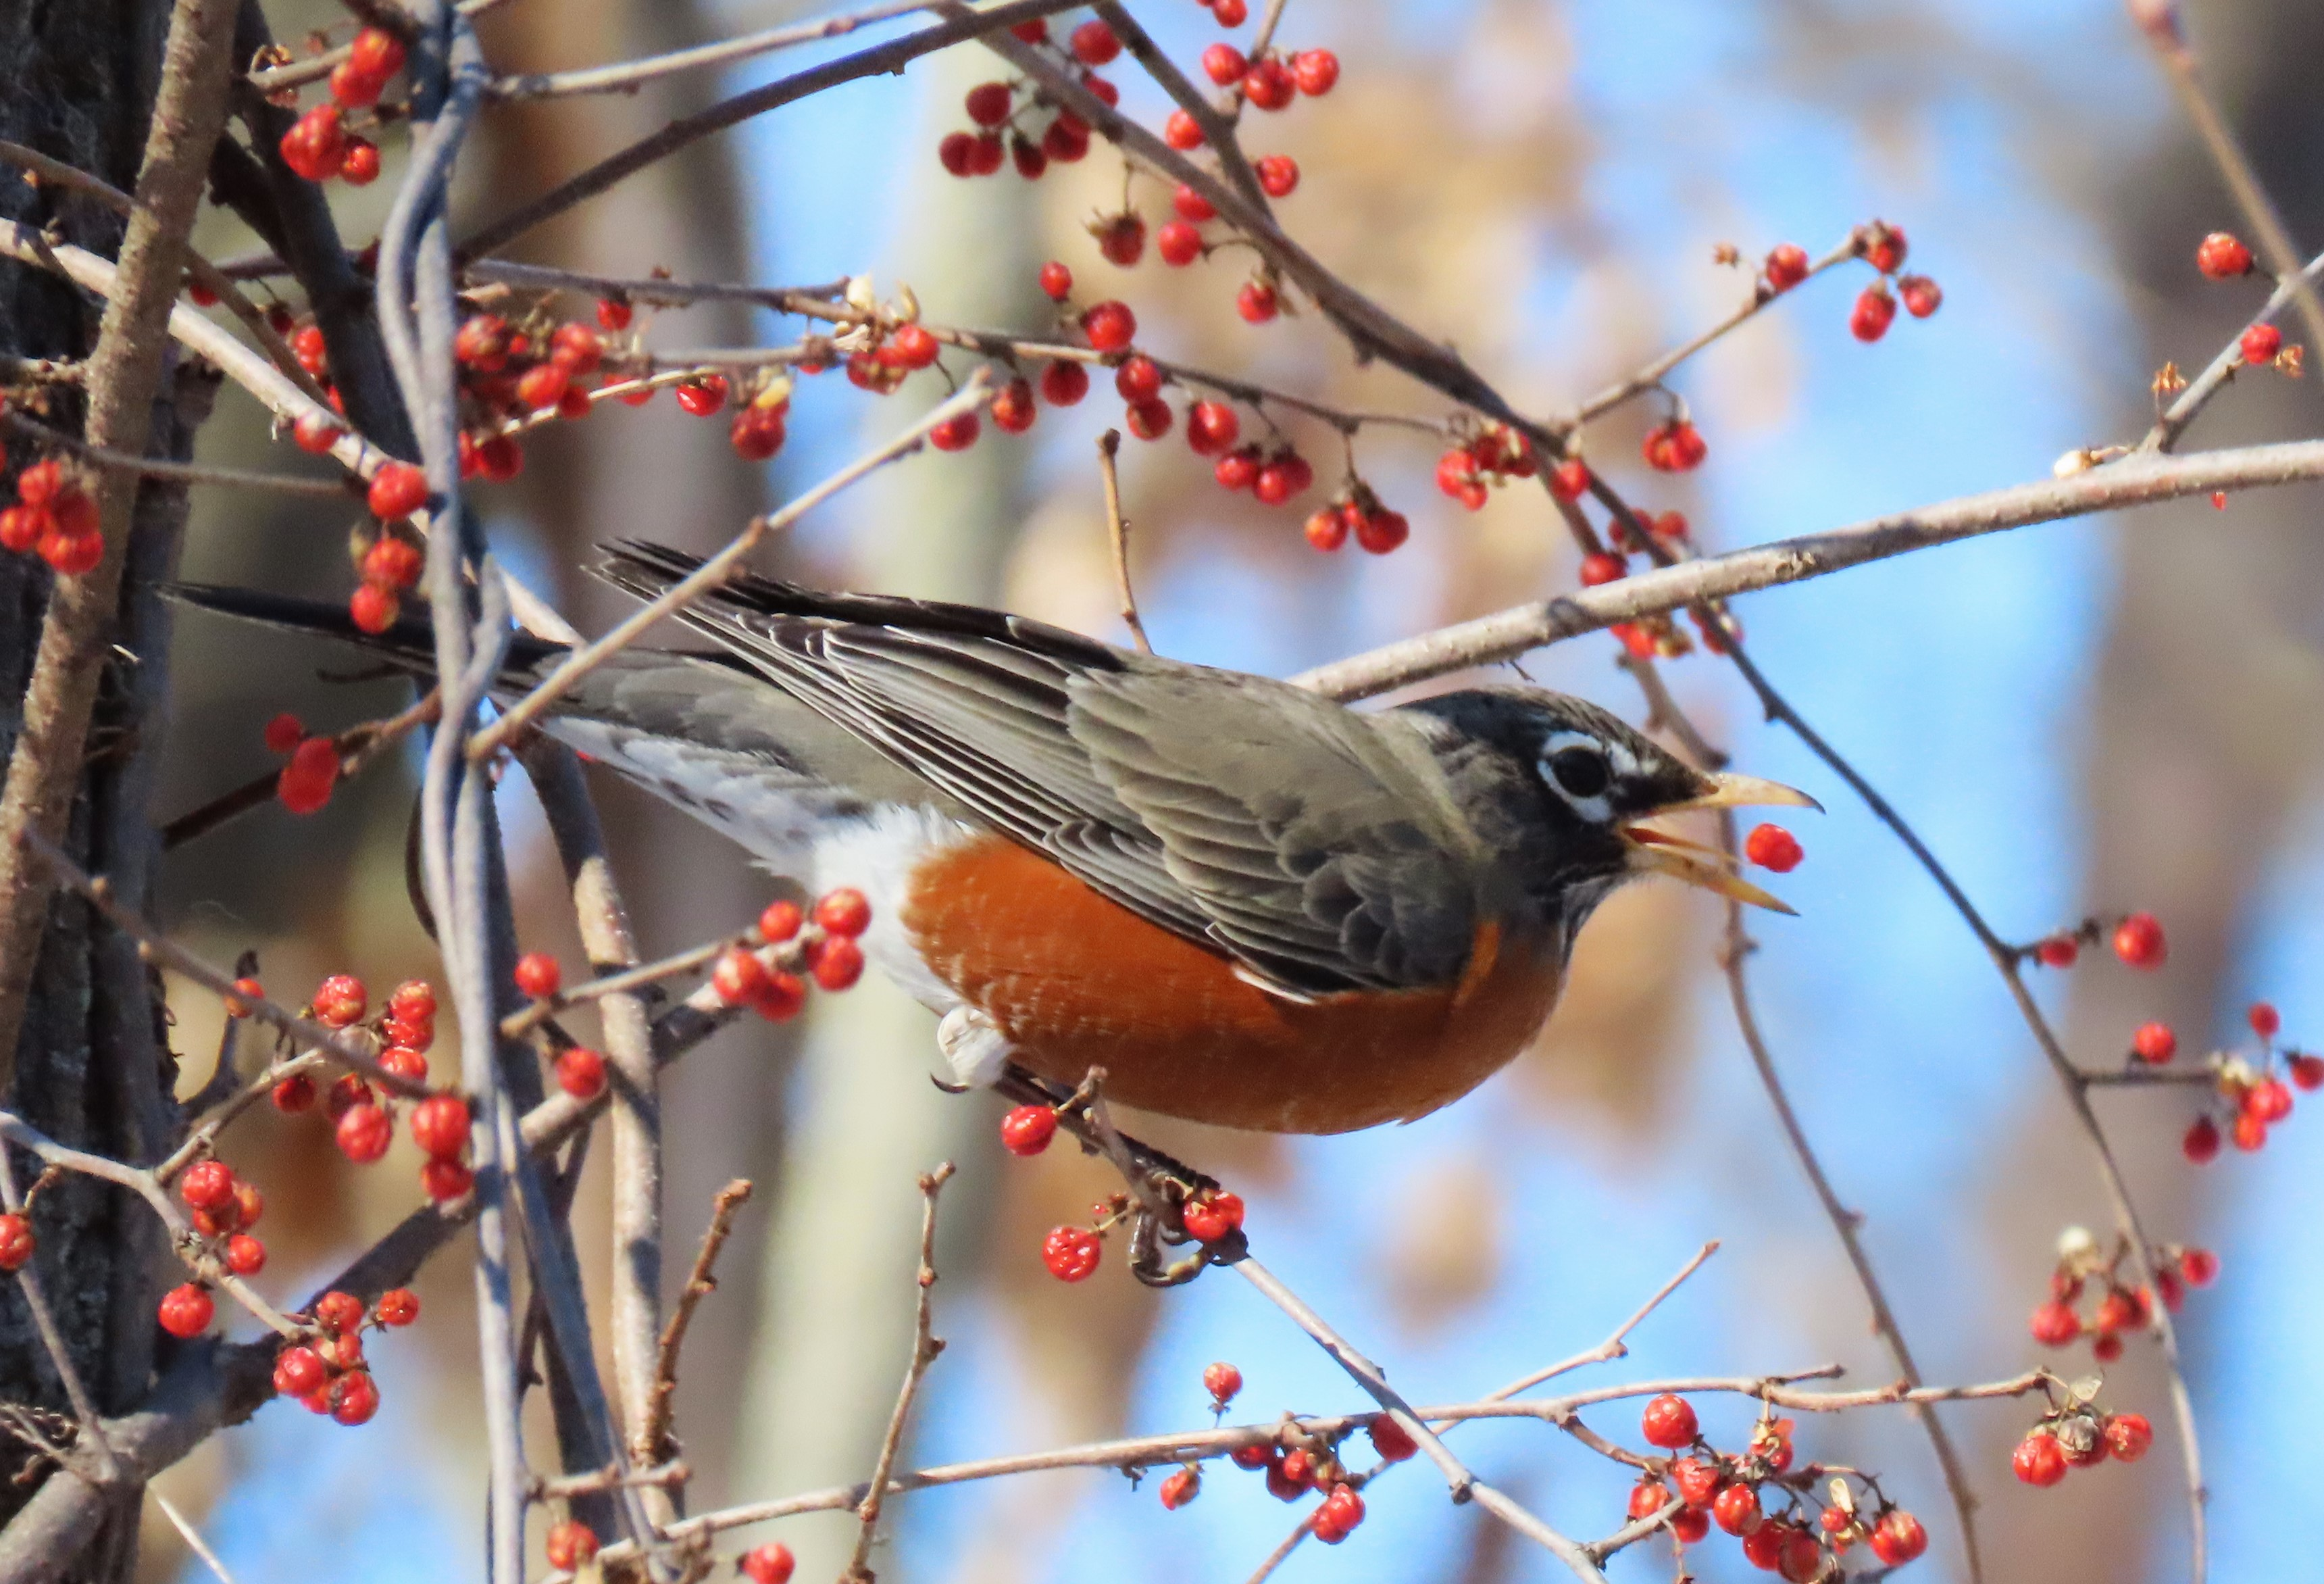 A Robin eats a red berry